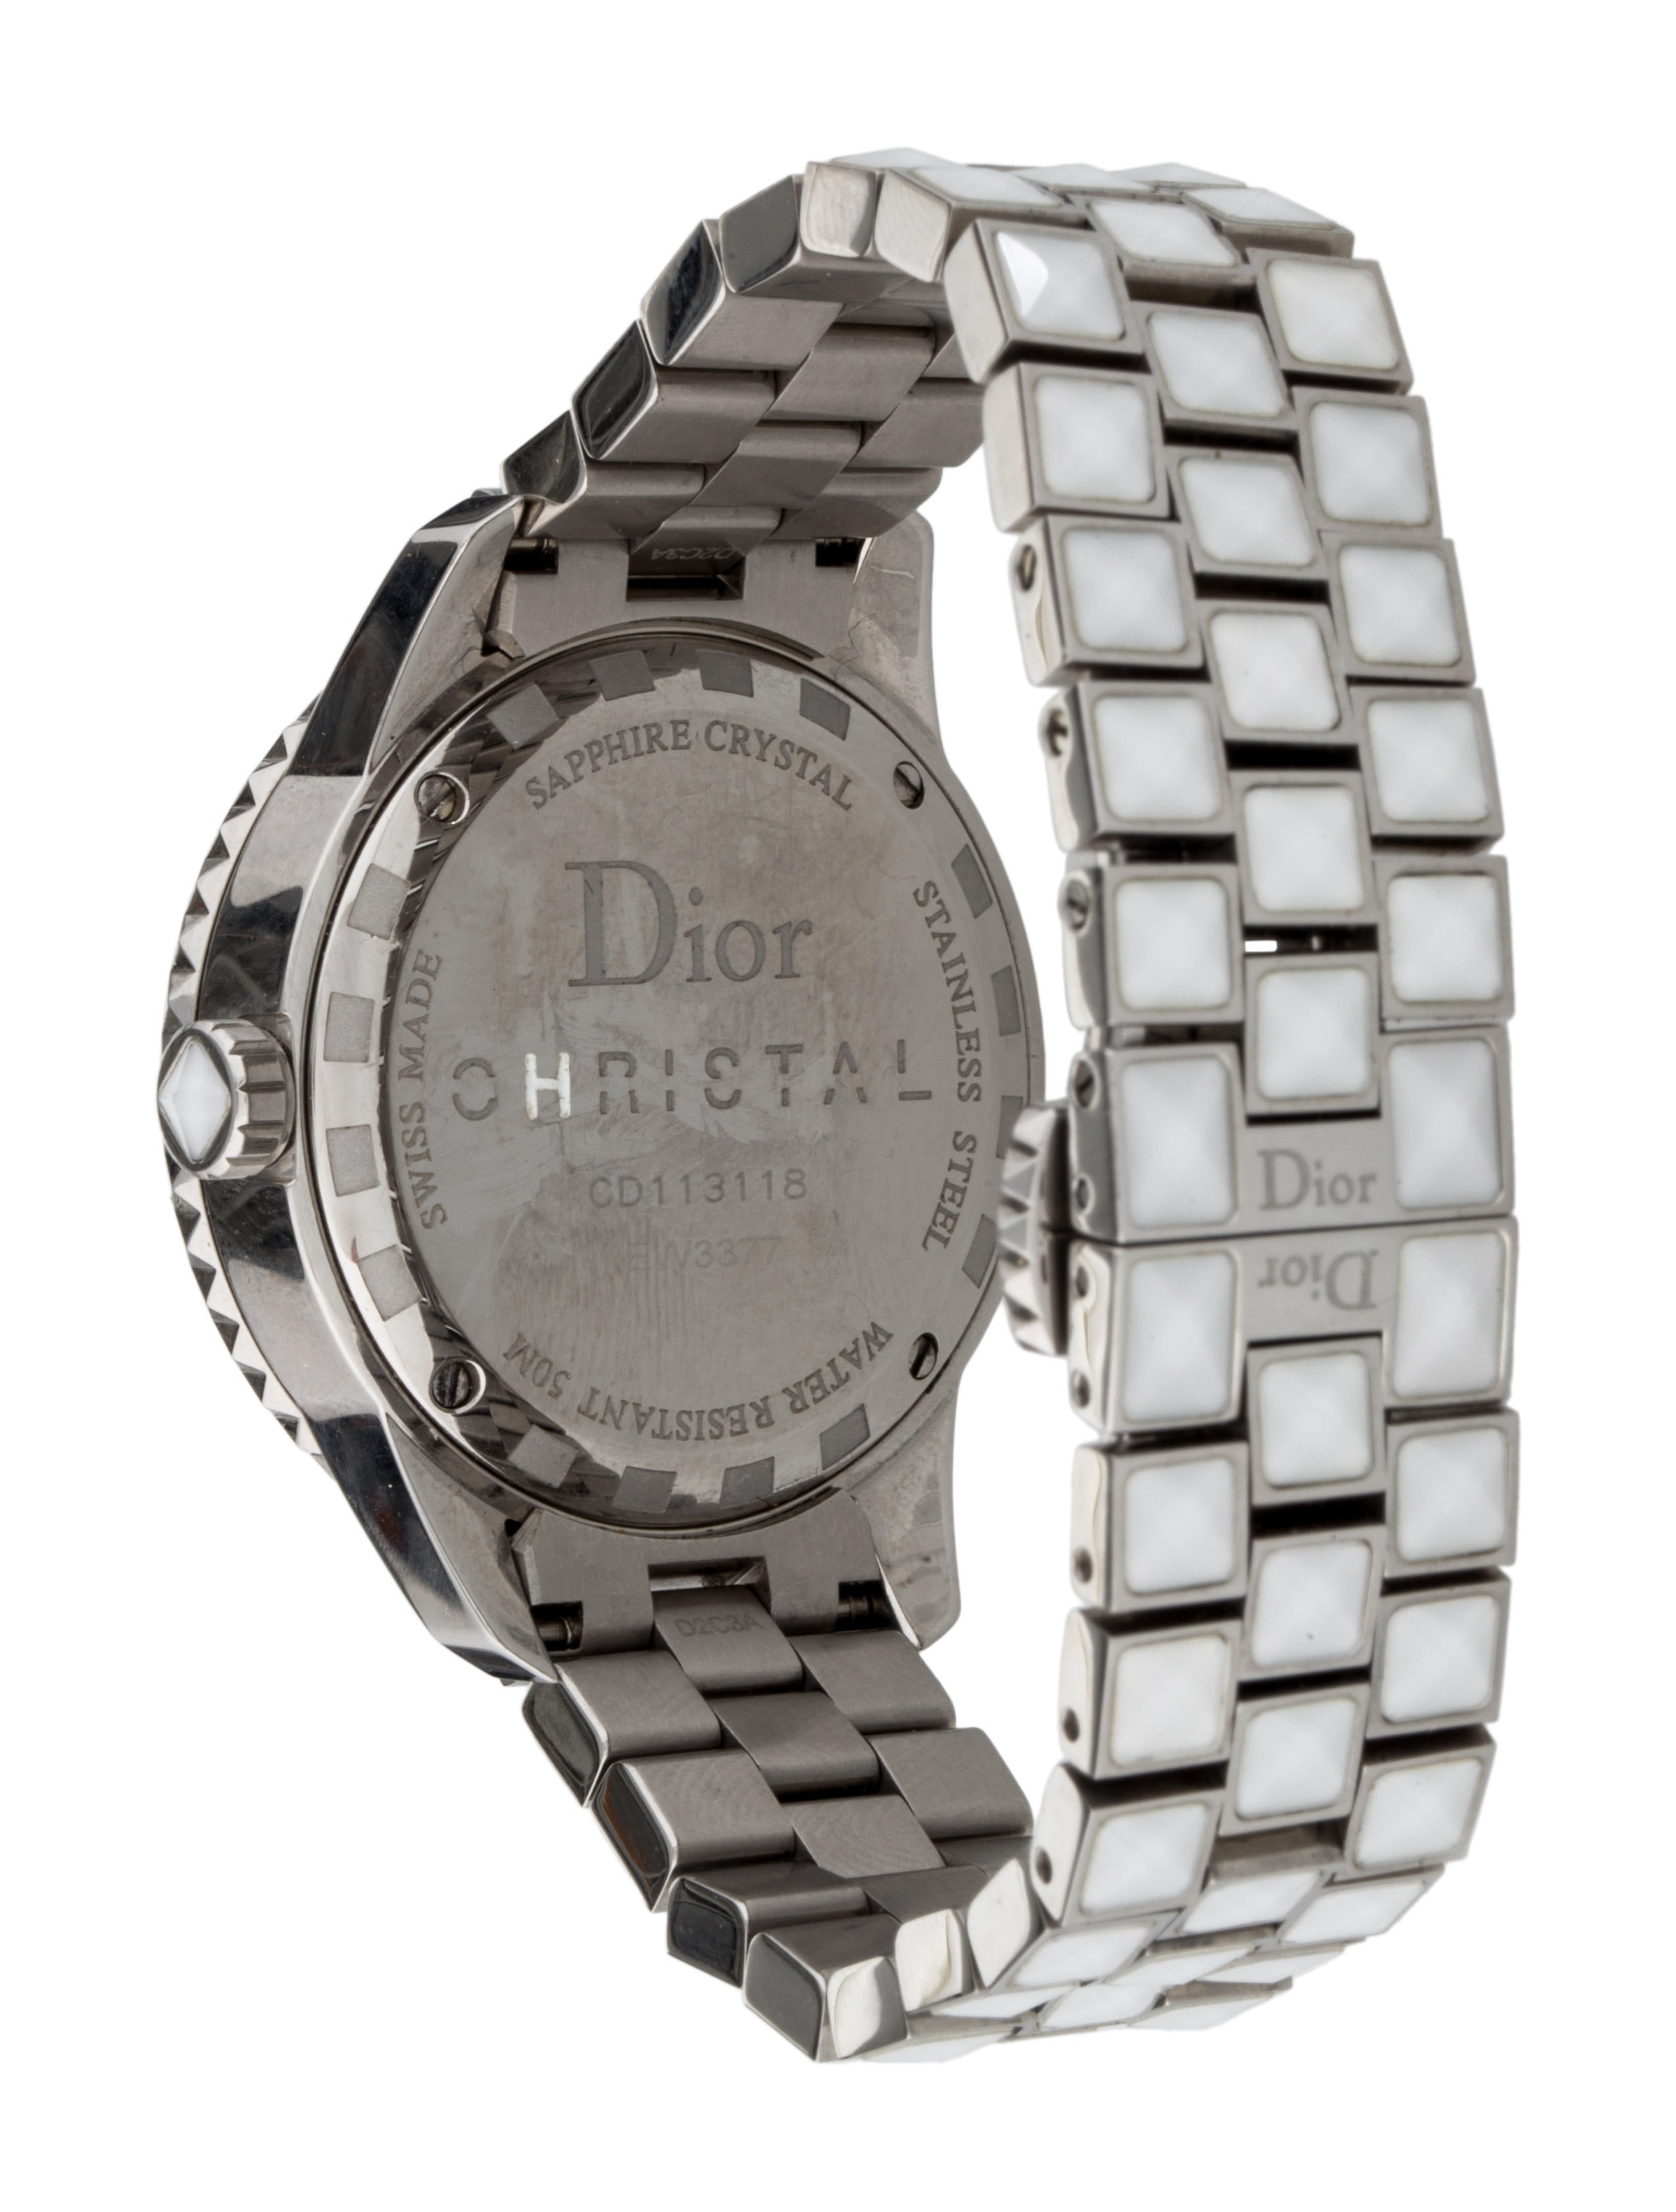 Christian dior christal watch bracelet chr33995 the realreal for Christian dior watches